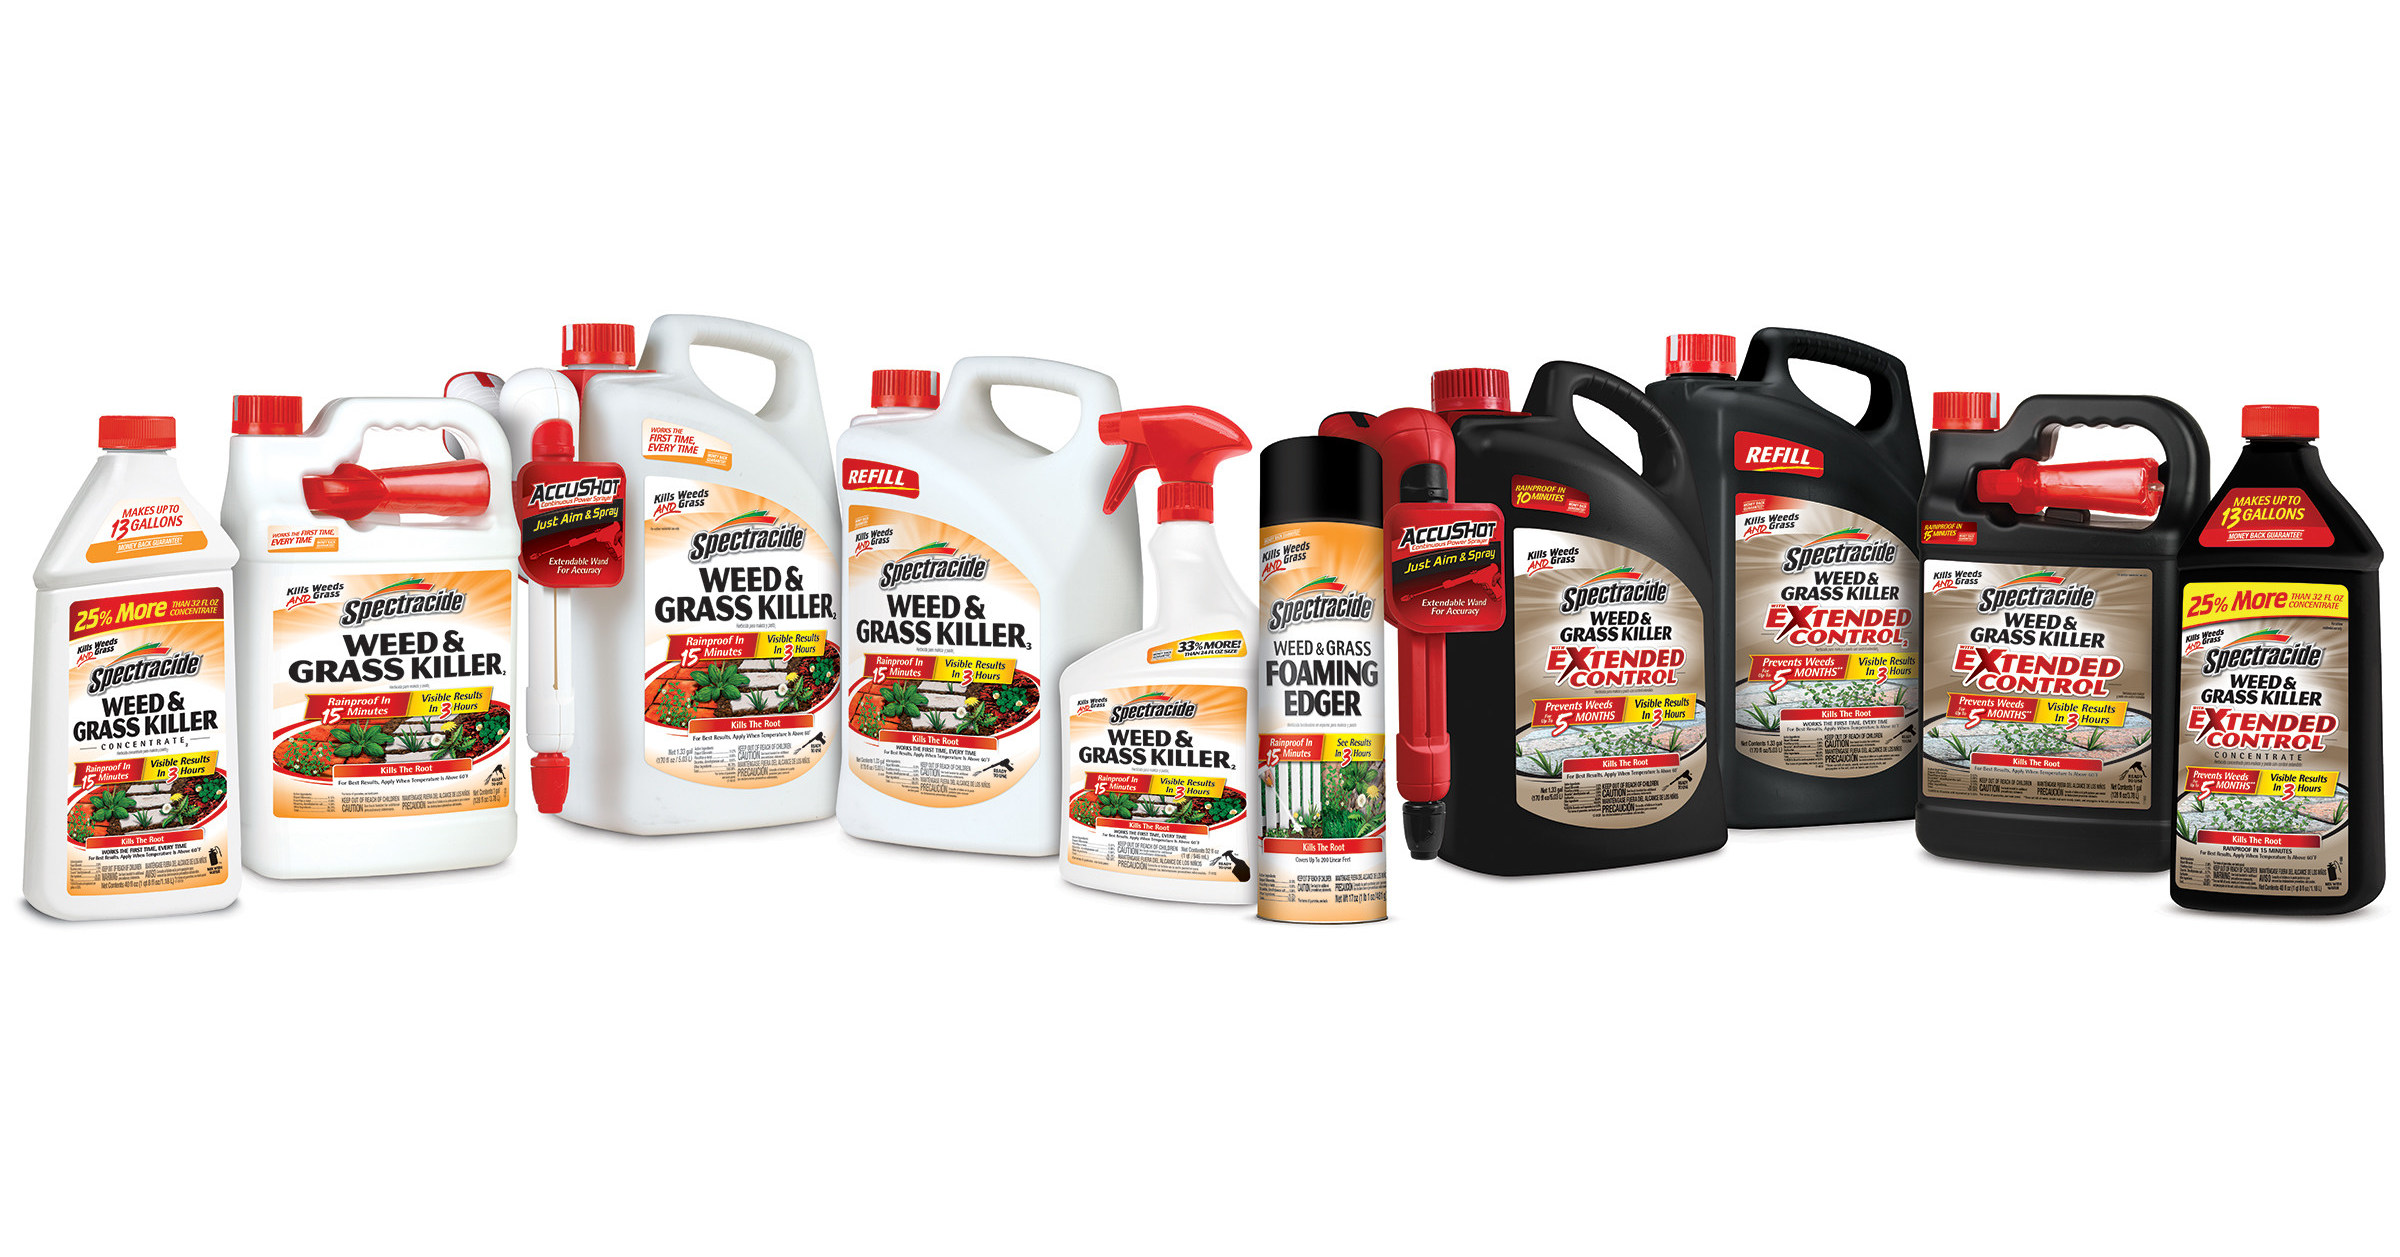 Spectracide® Weed & Grass Killer Products Not Formulated With Active Ingredient Glyphosate